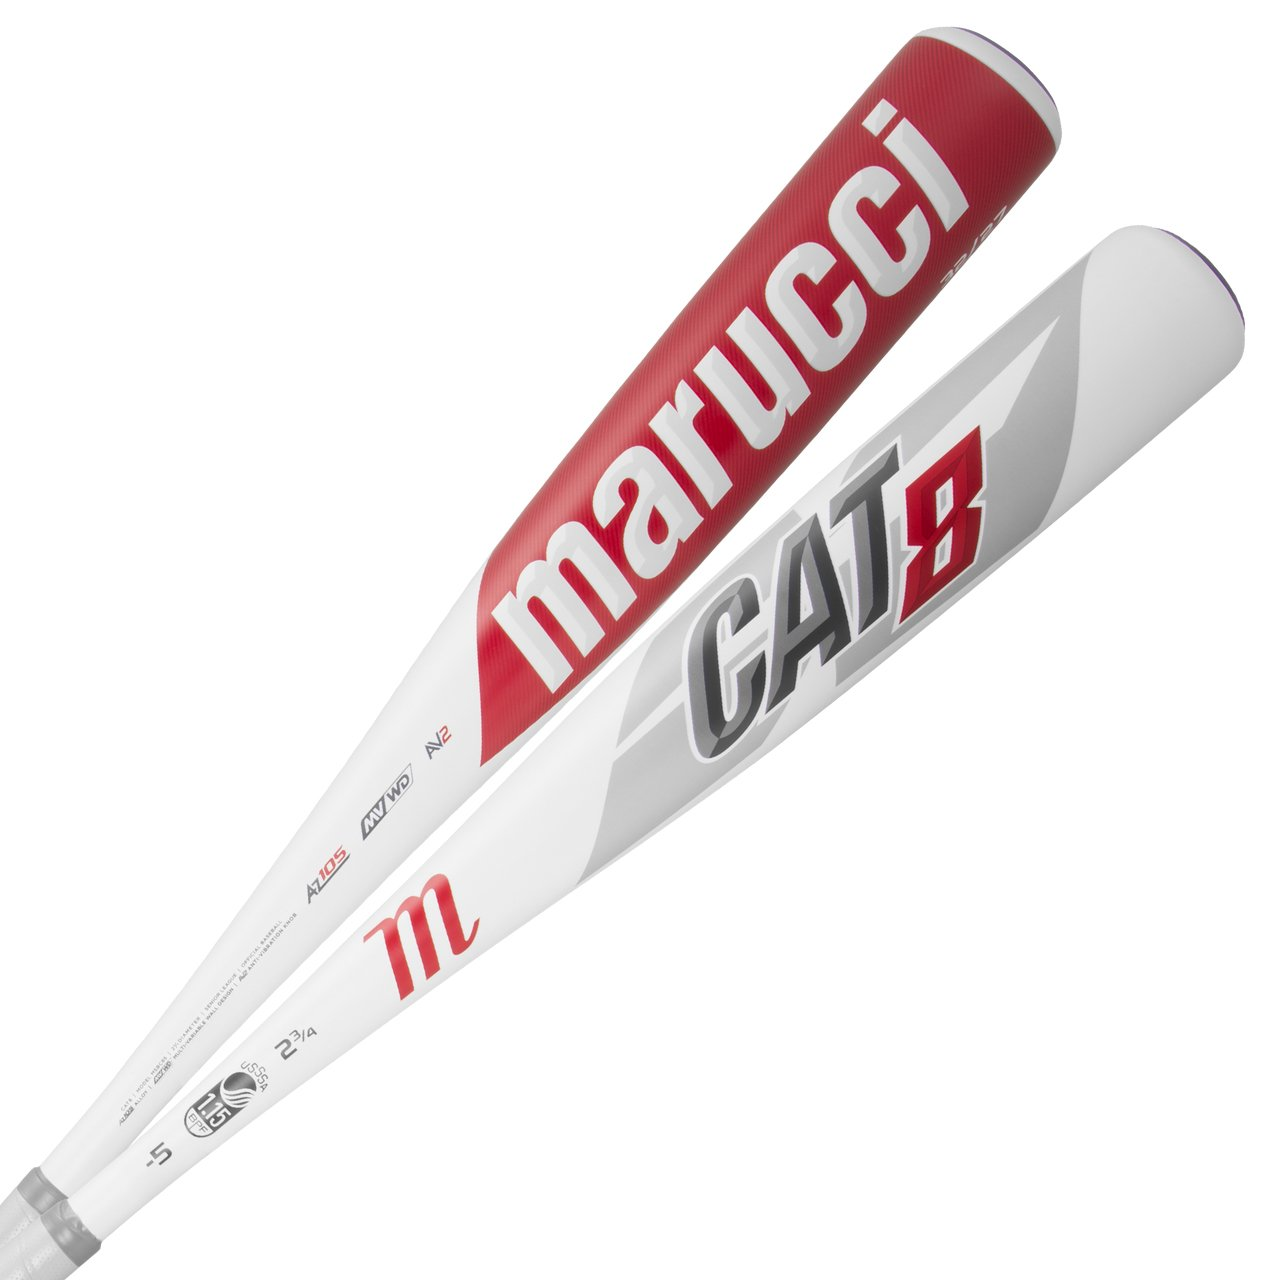 Marucci CAT 8 -5 USSSA Baseball Bat THUMBNAIL